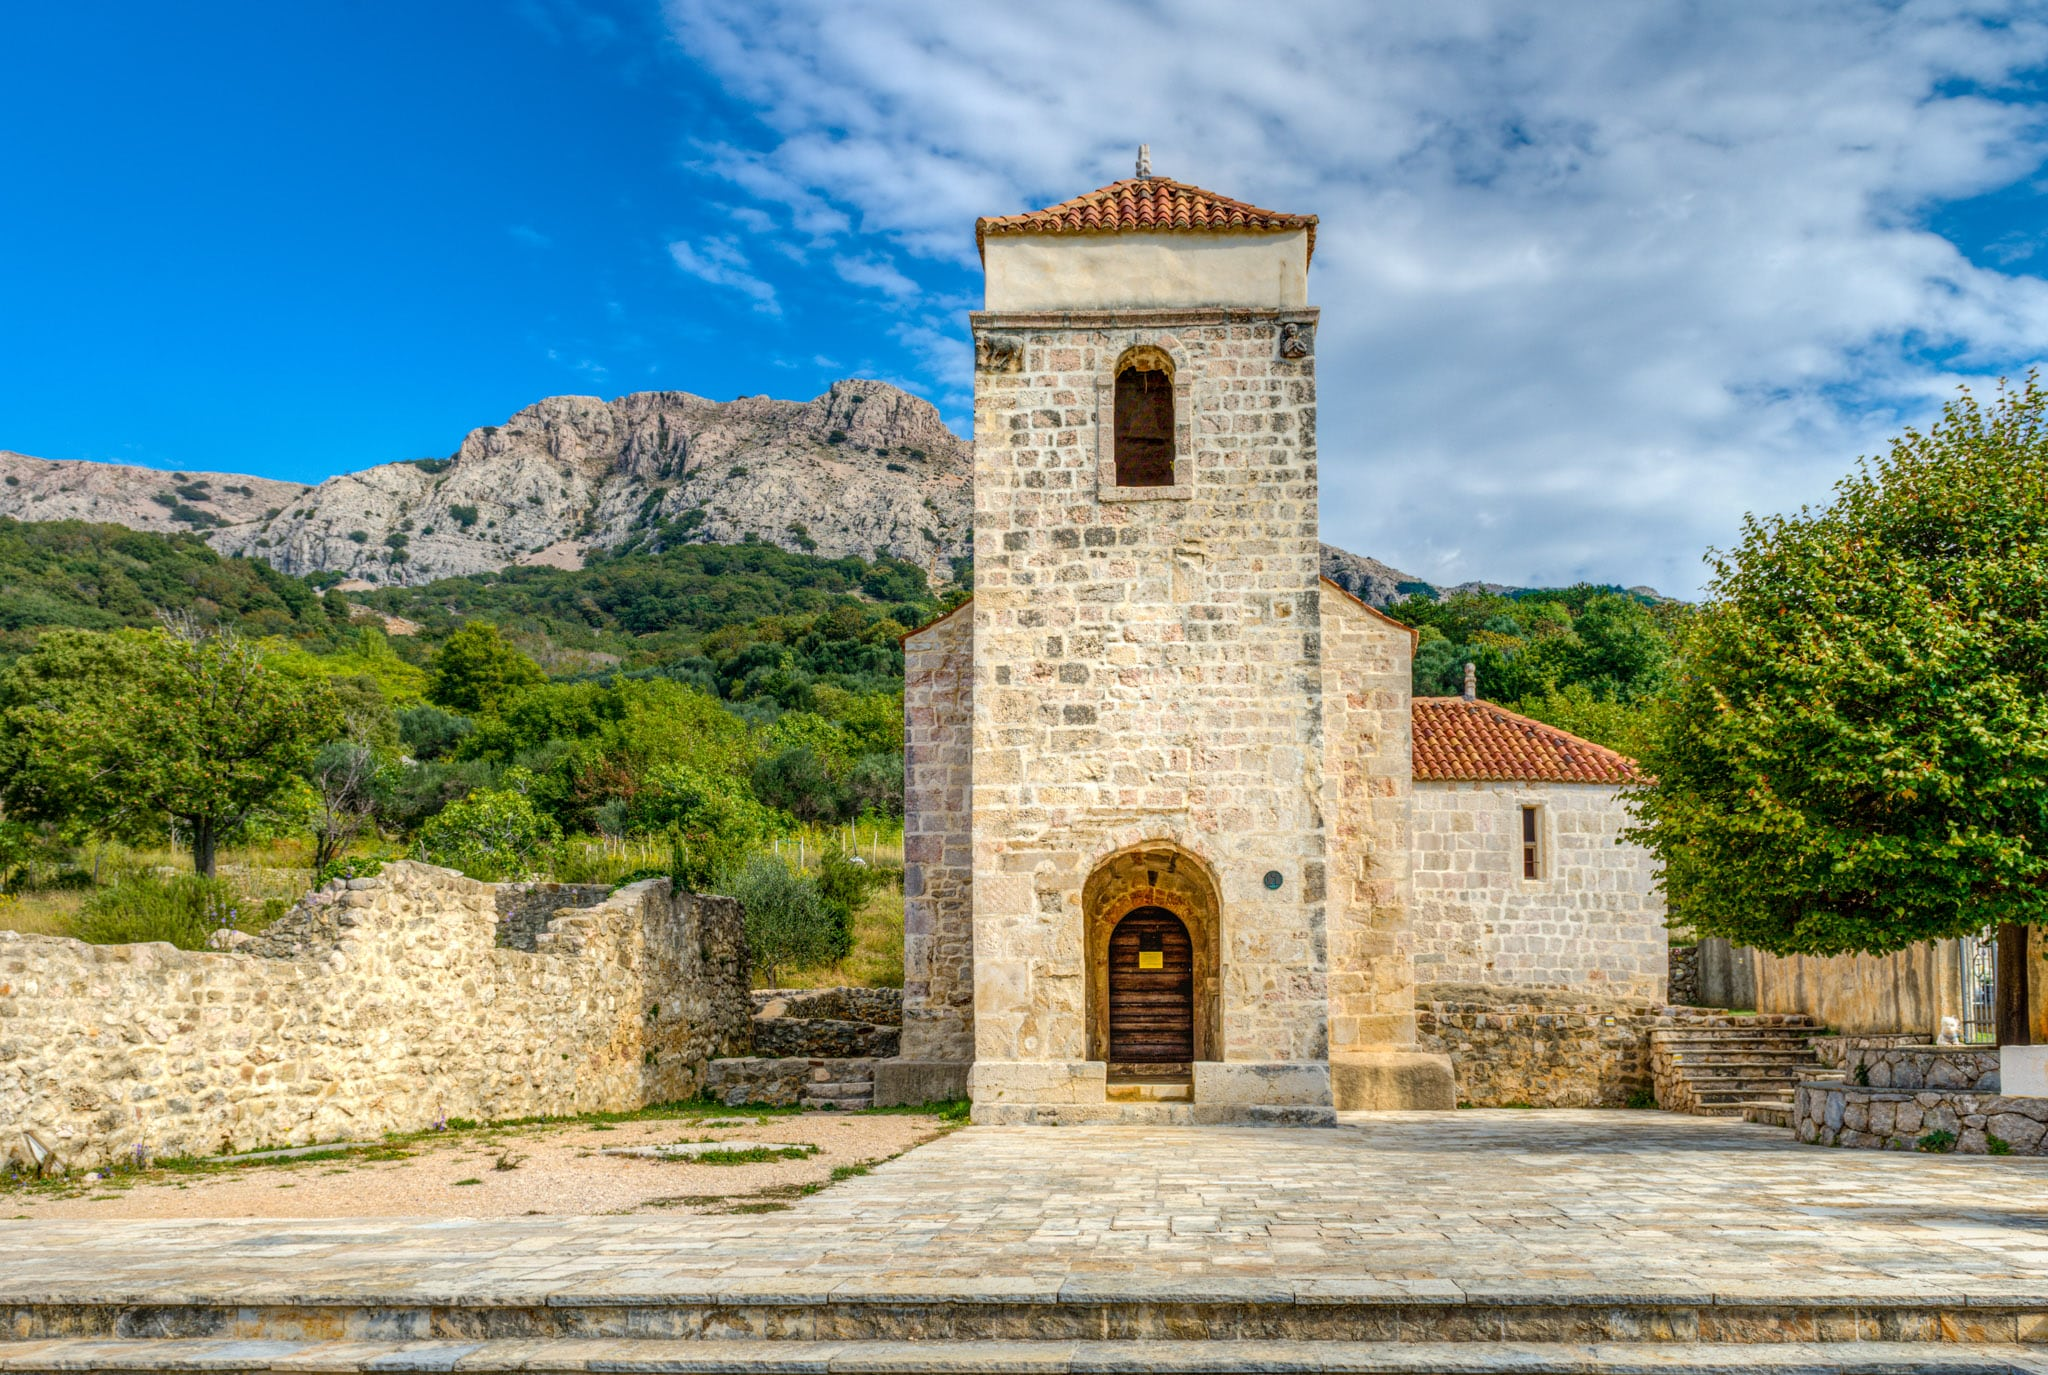 The front View of the Church of St. Lucy near Baska on the island of Krk in Croatia.